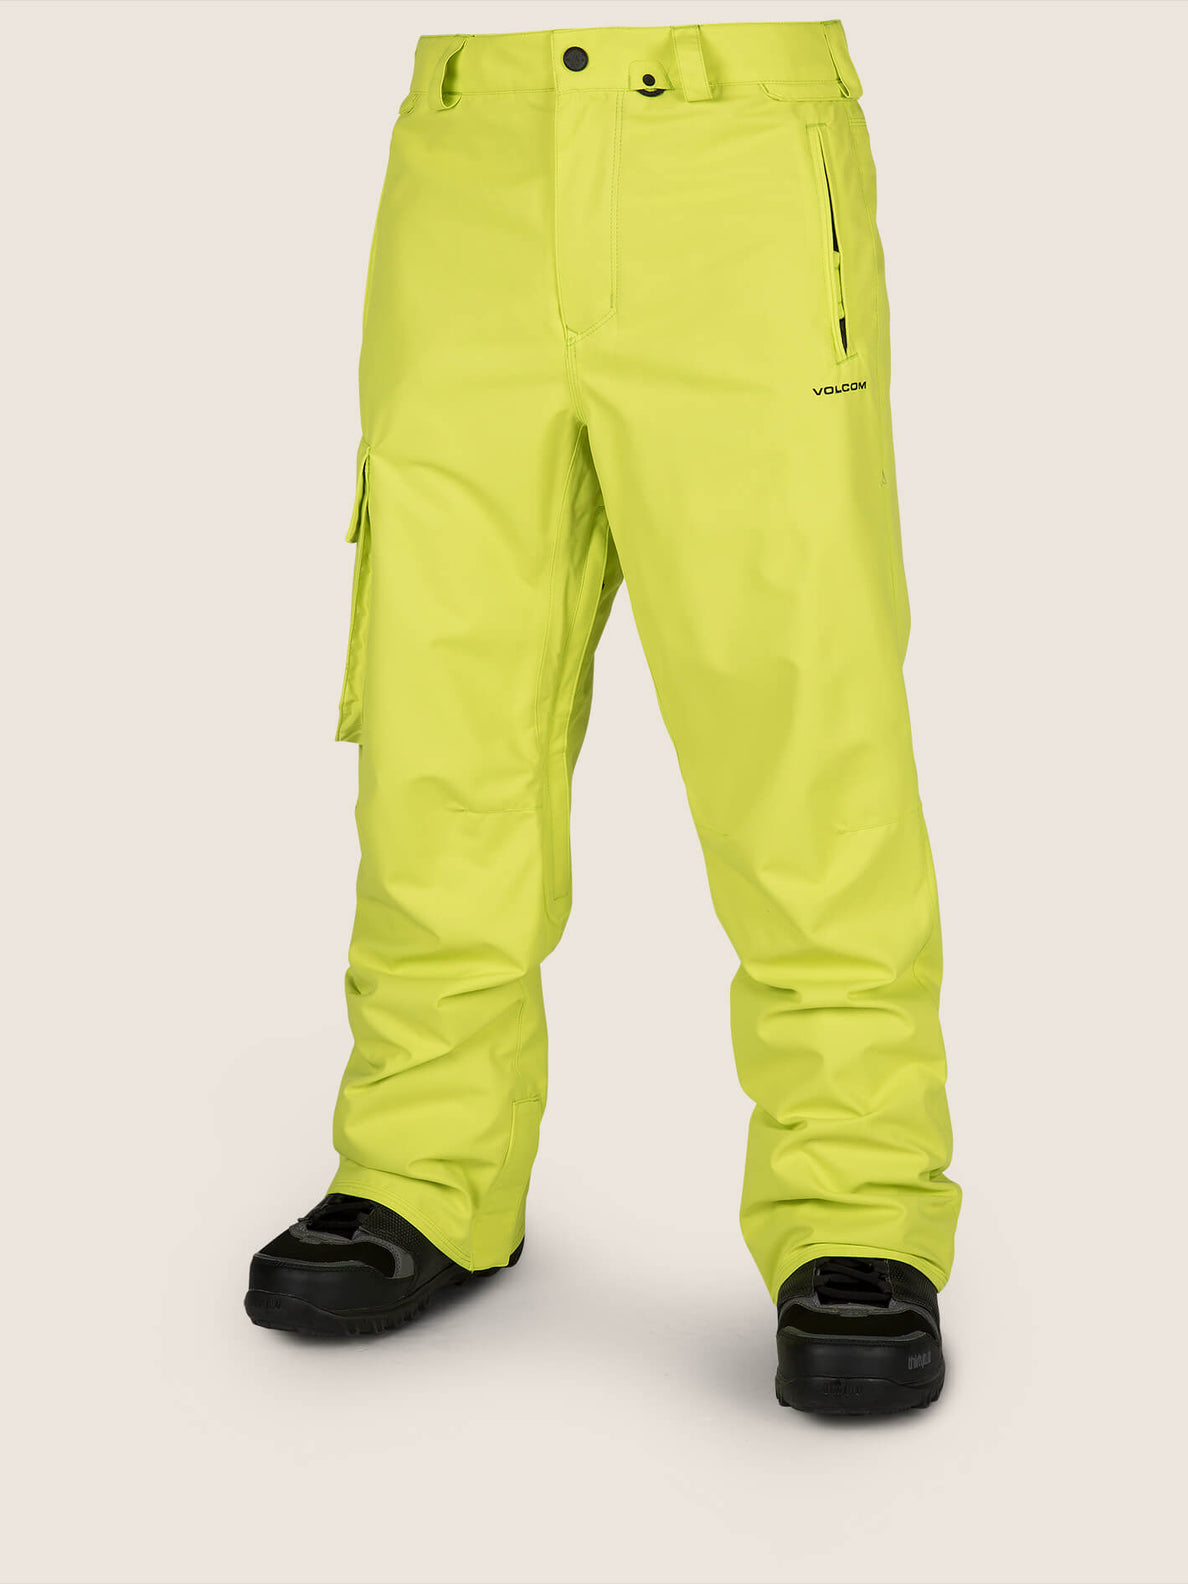 Ventral Pant In Lime, Front View